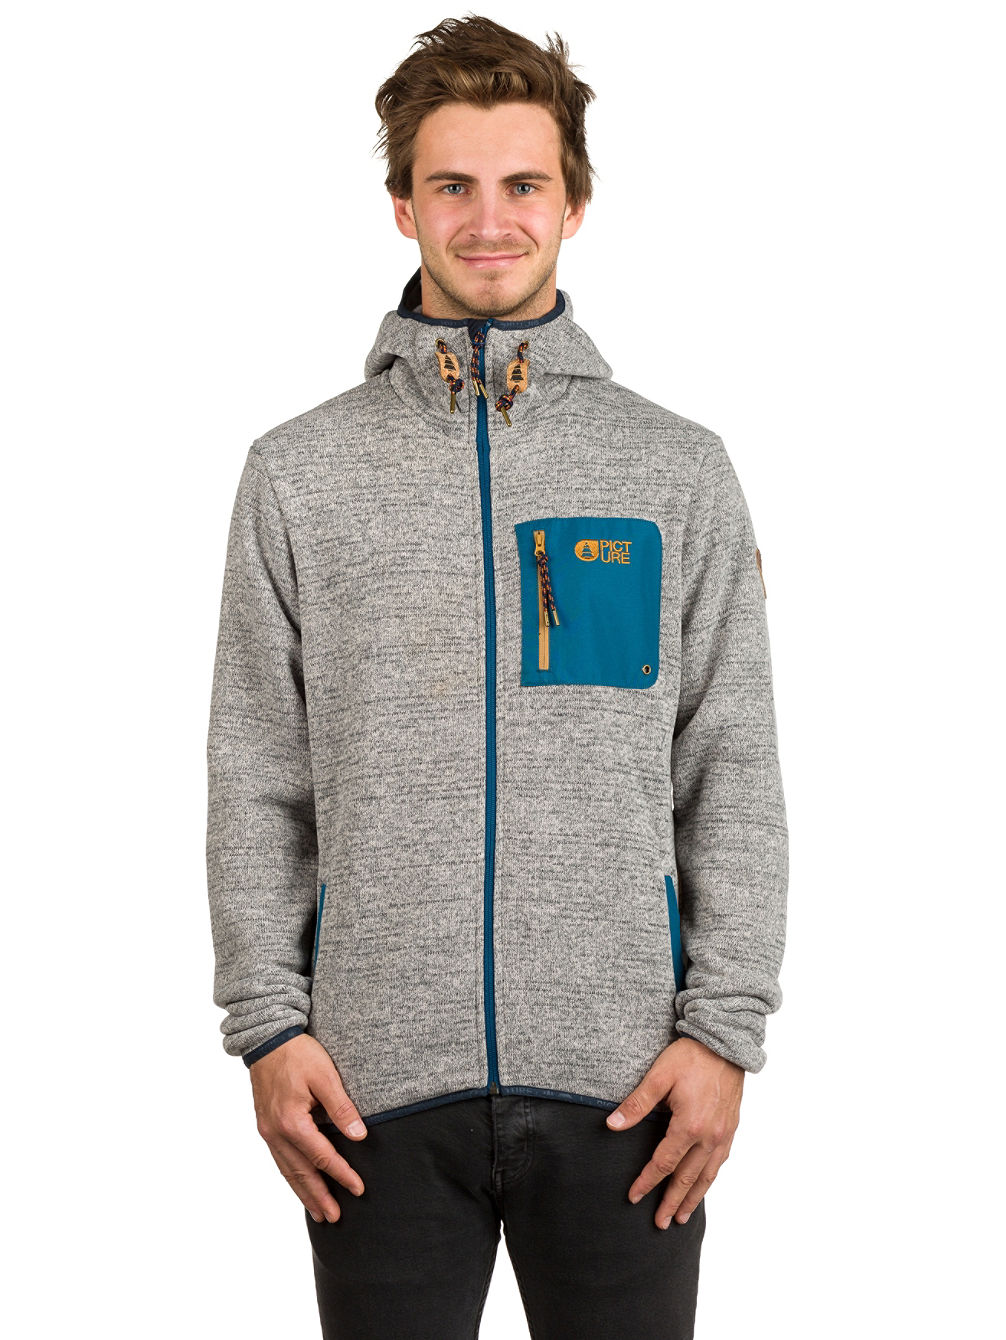 Marco Fleece Jacket